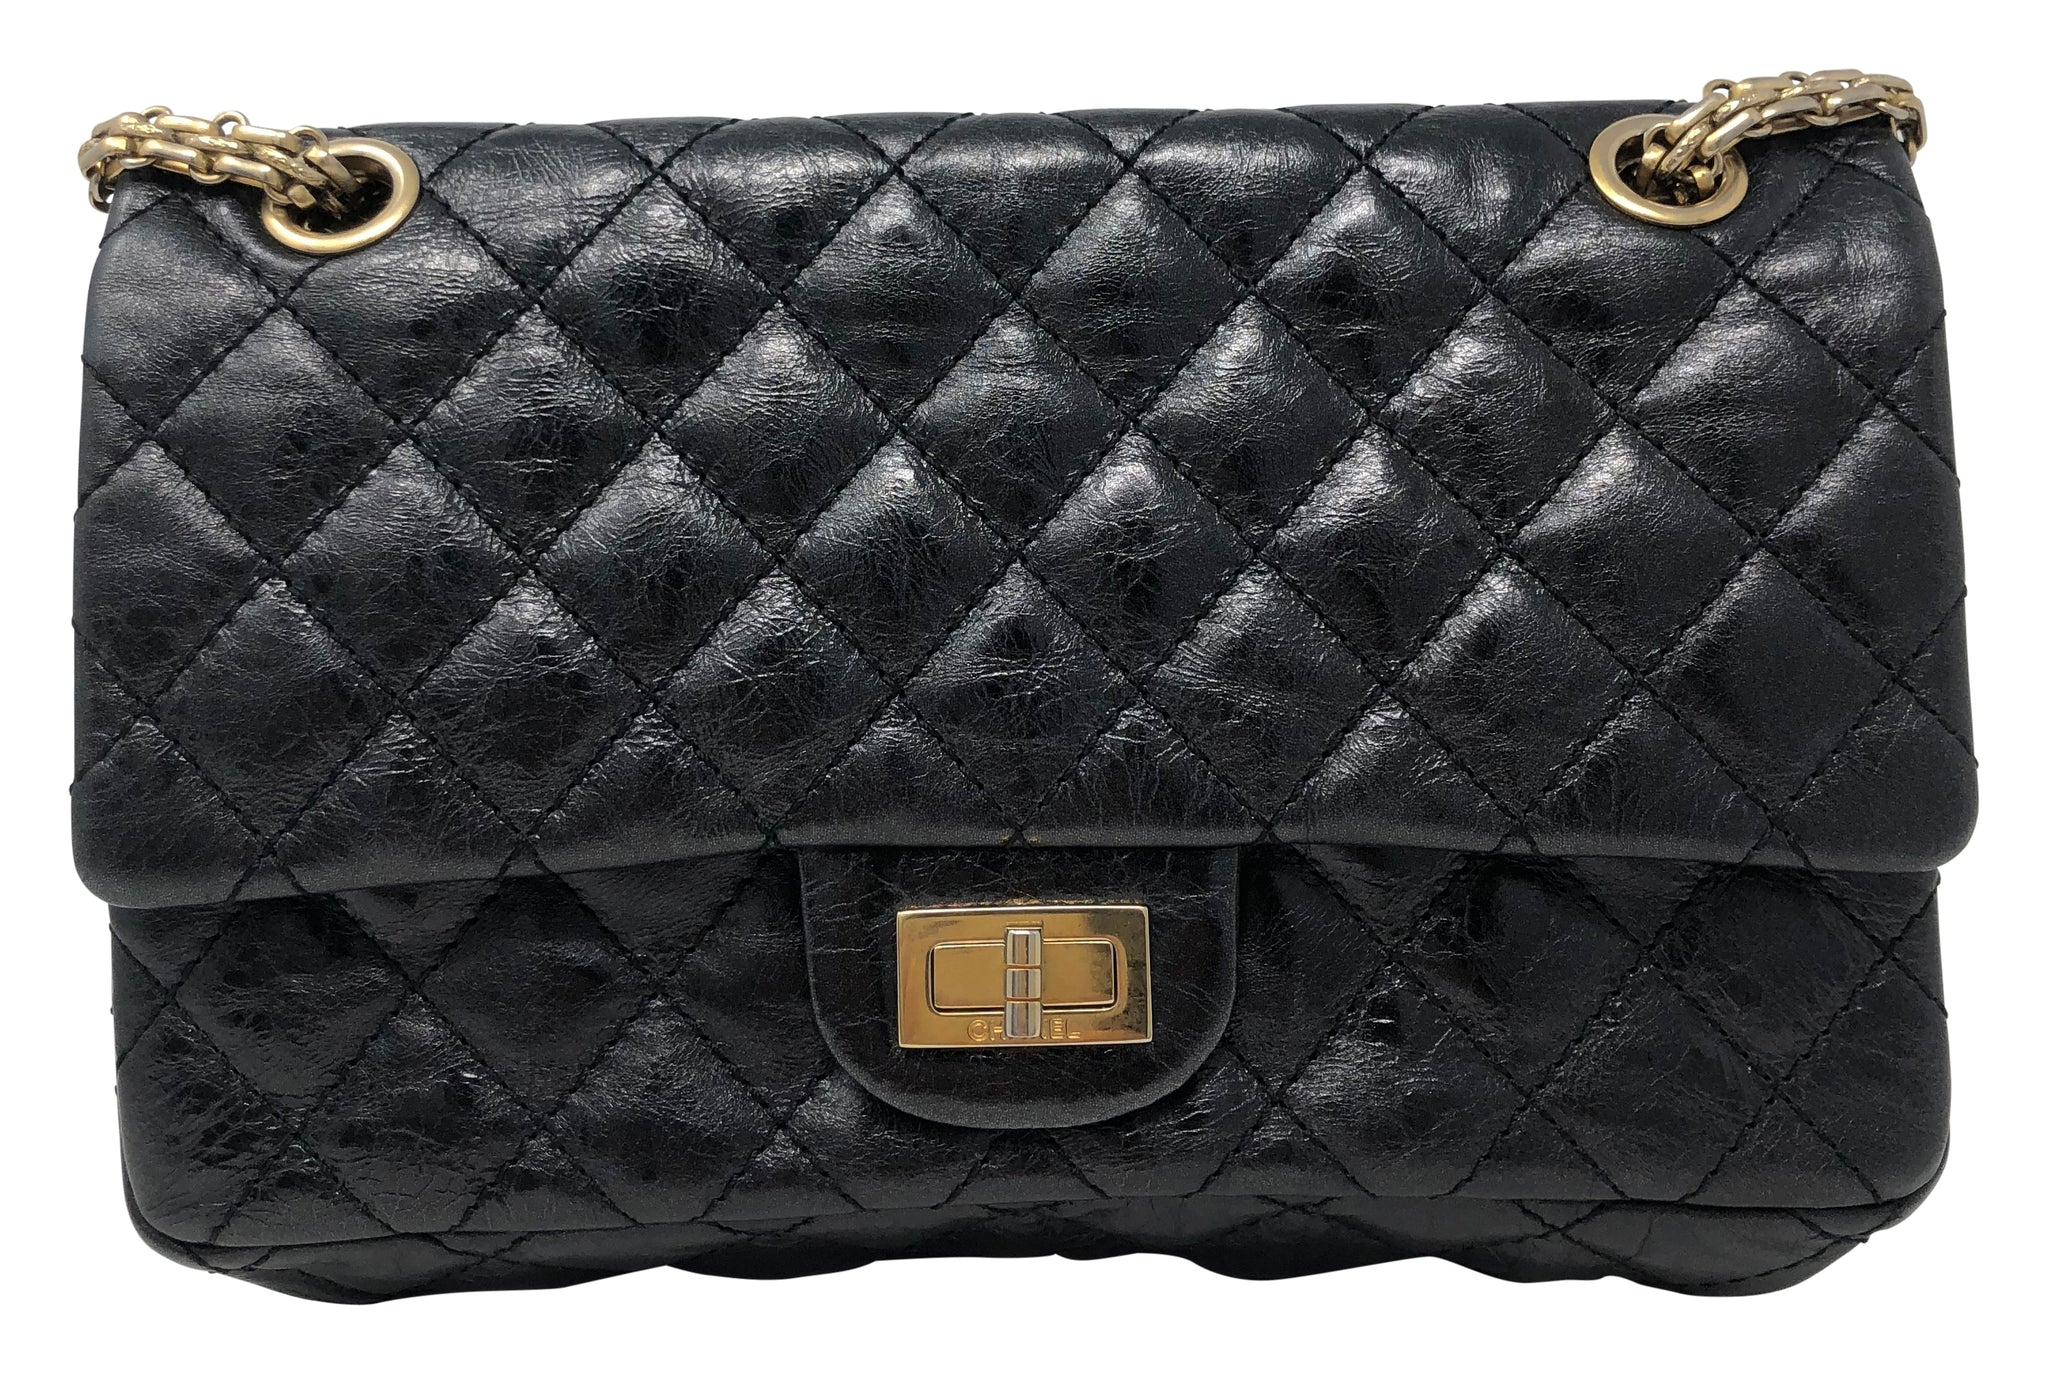 Chanel reissue flap 2.55 metallic black handbag